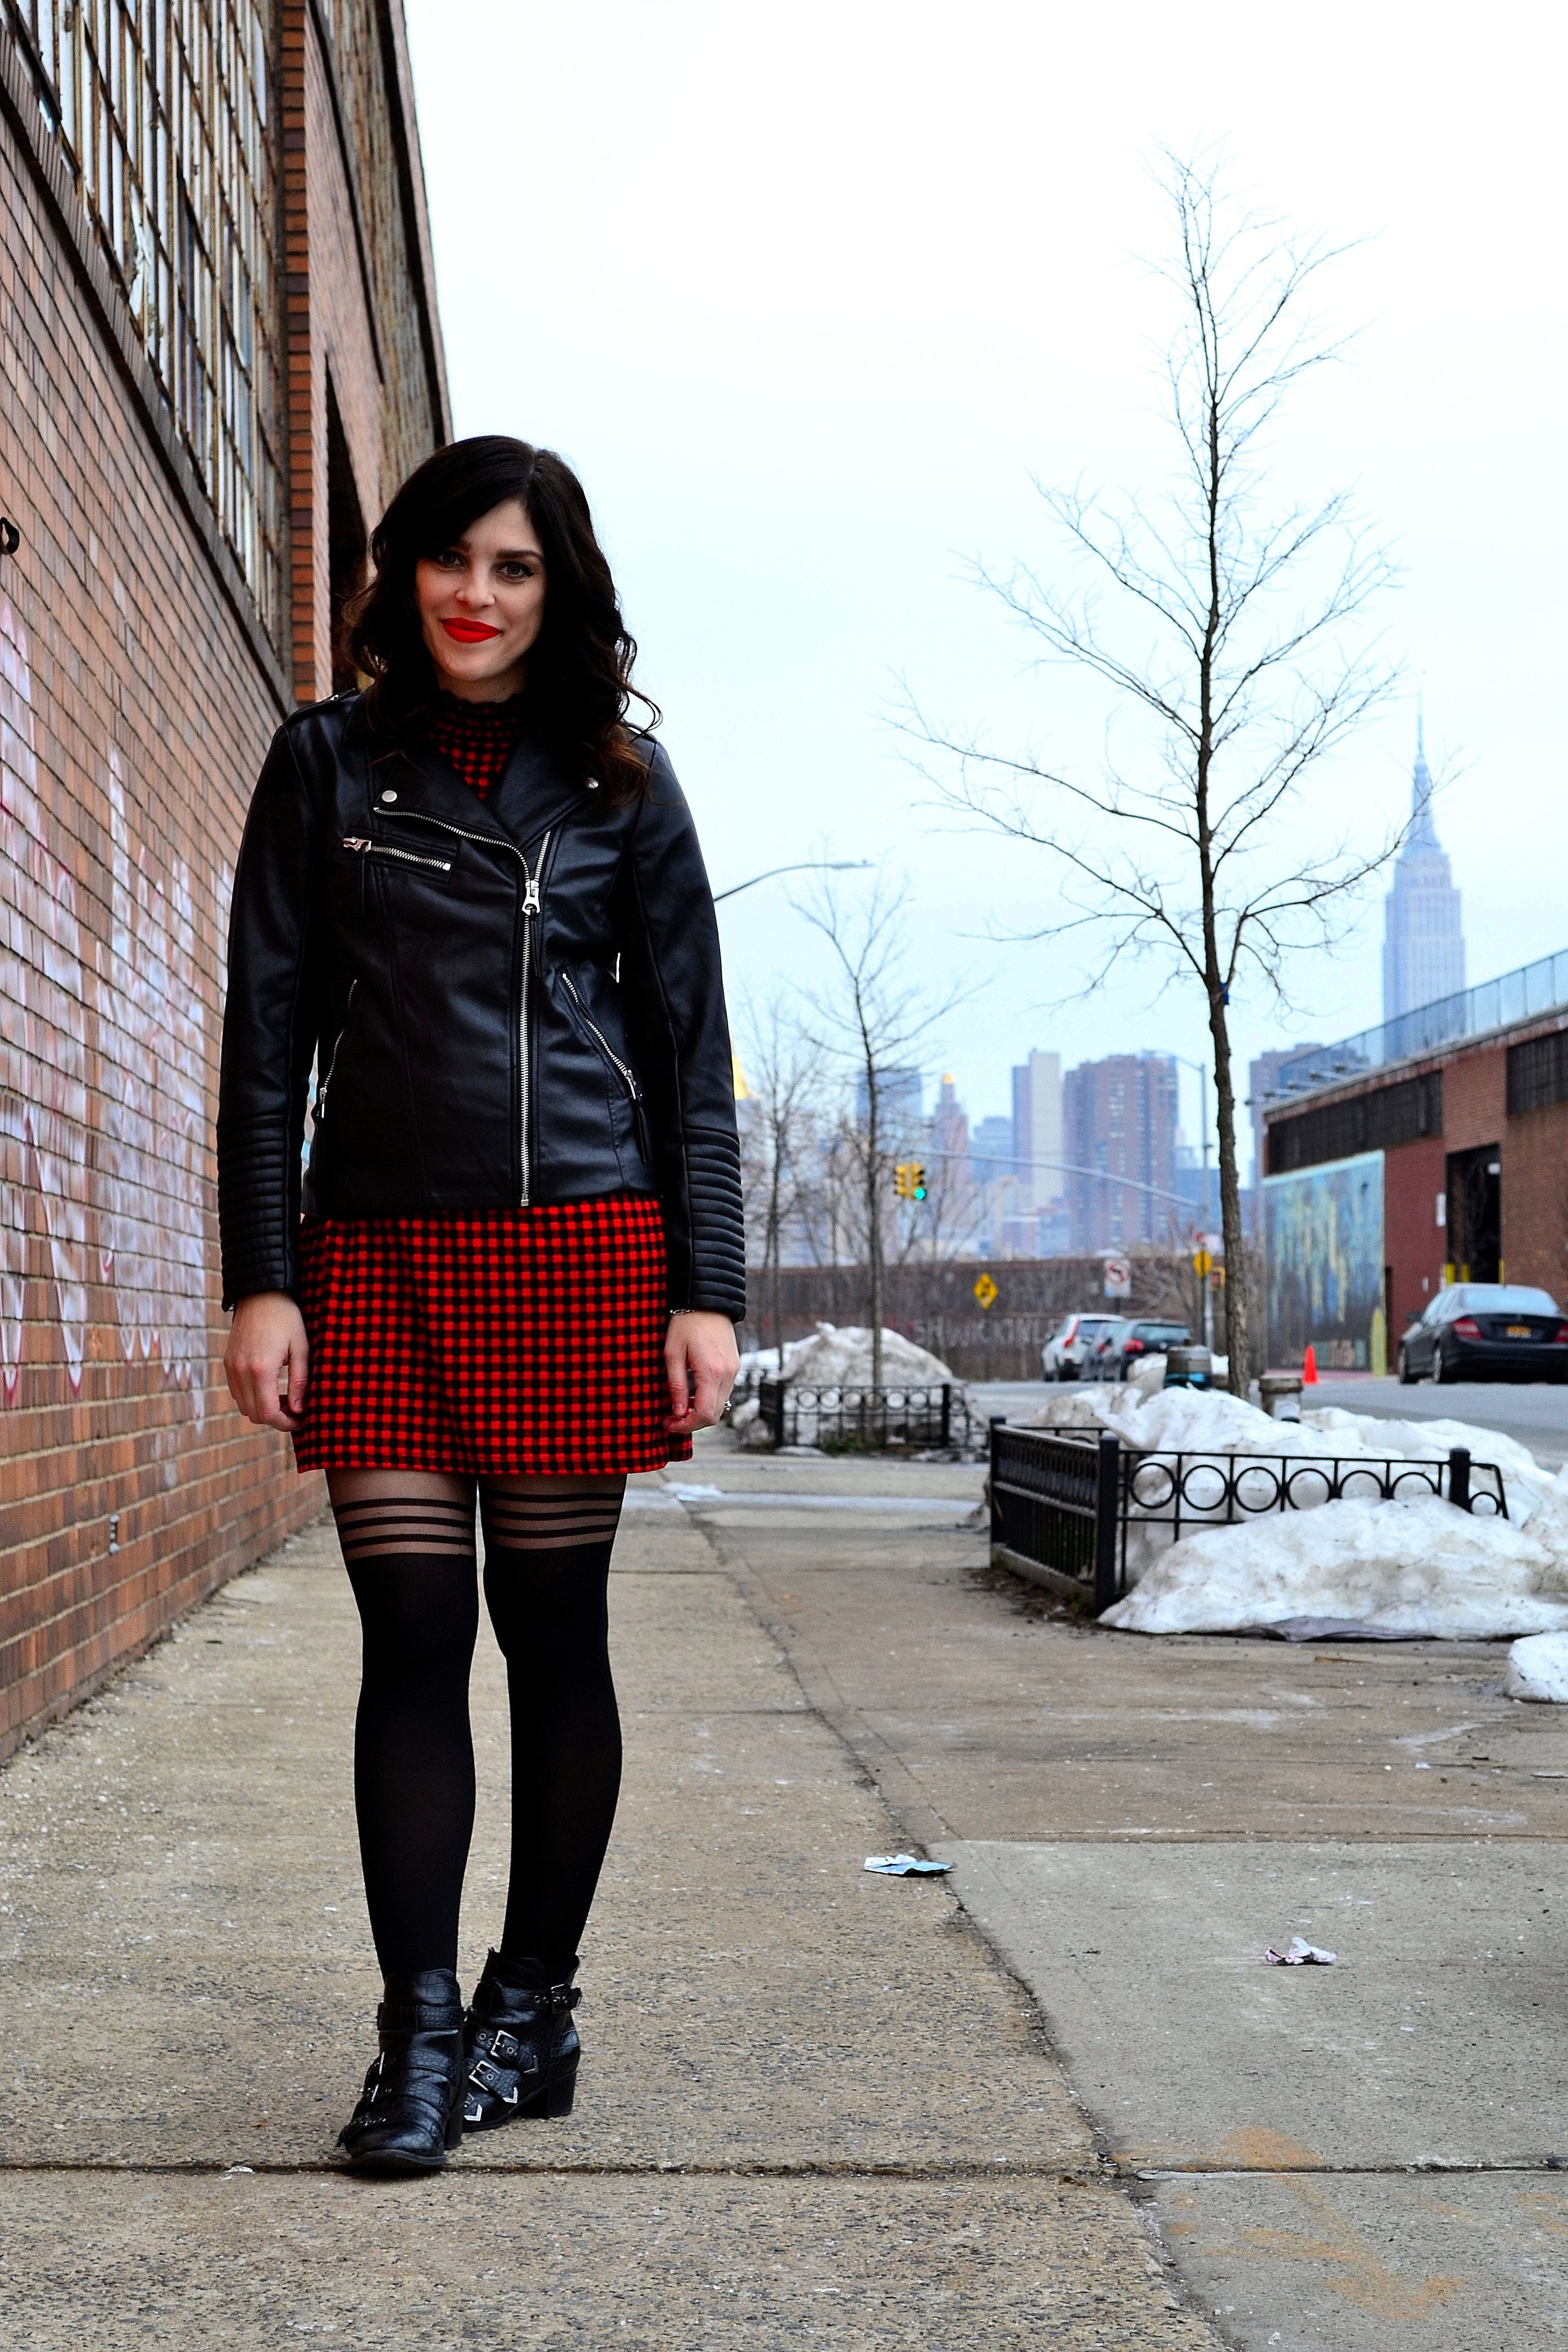 faux leather jacket: H&M, plaid dress: Zara, tights: ASOS, booties: Design Lab from Lord & Taylor